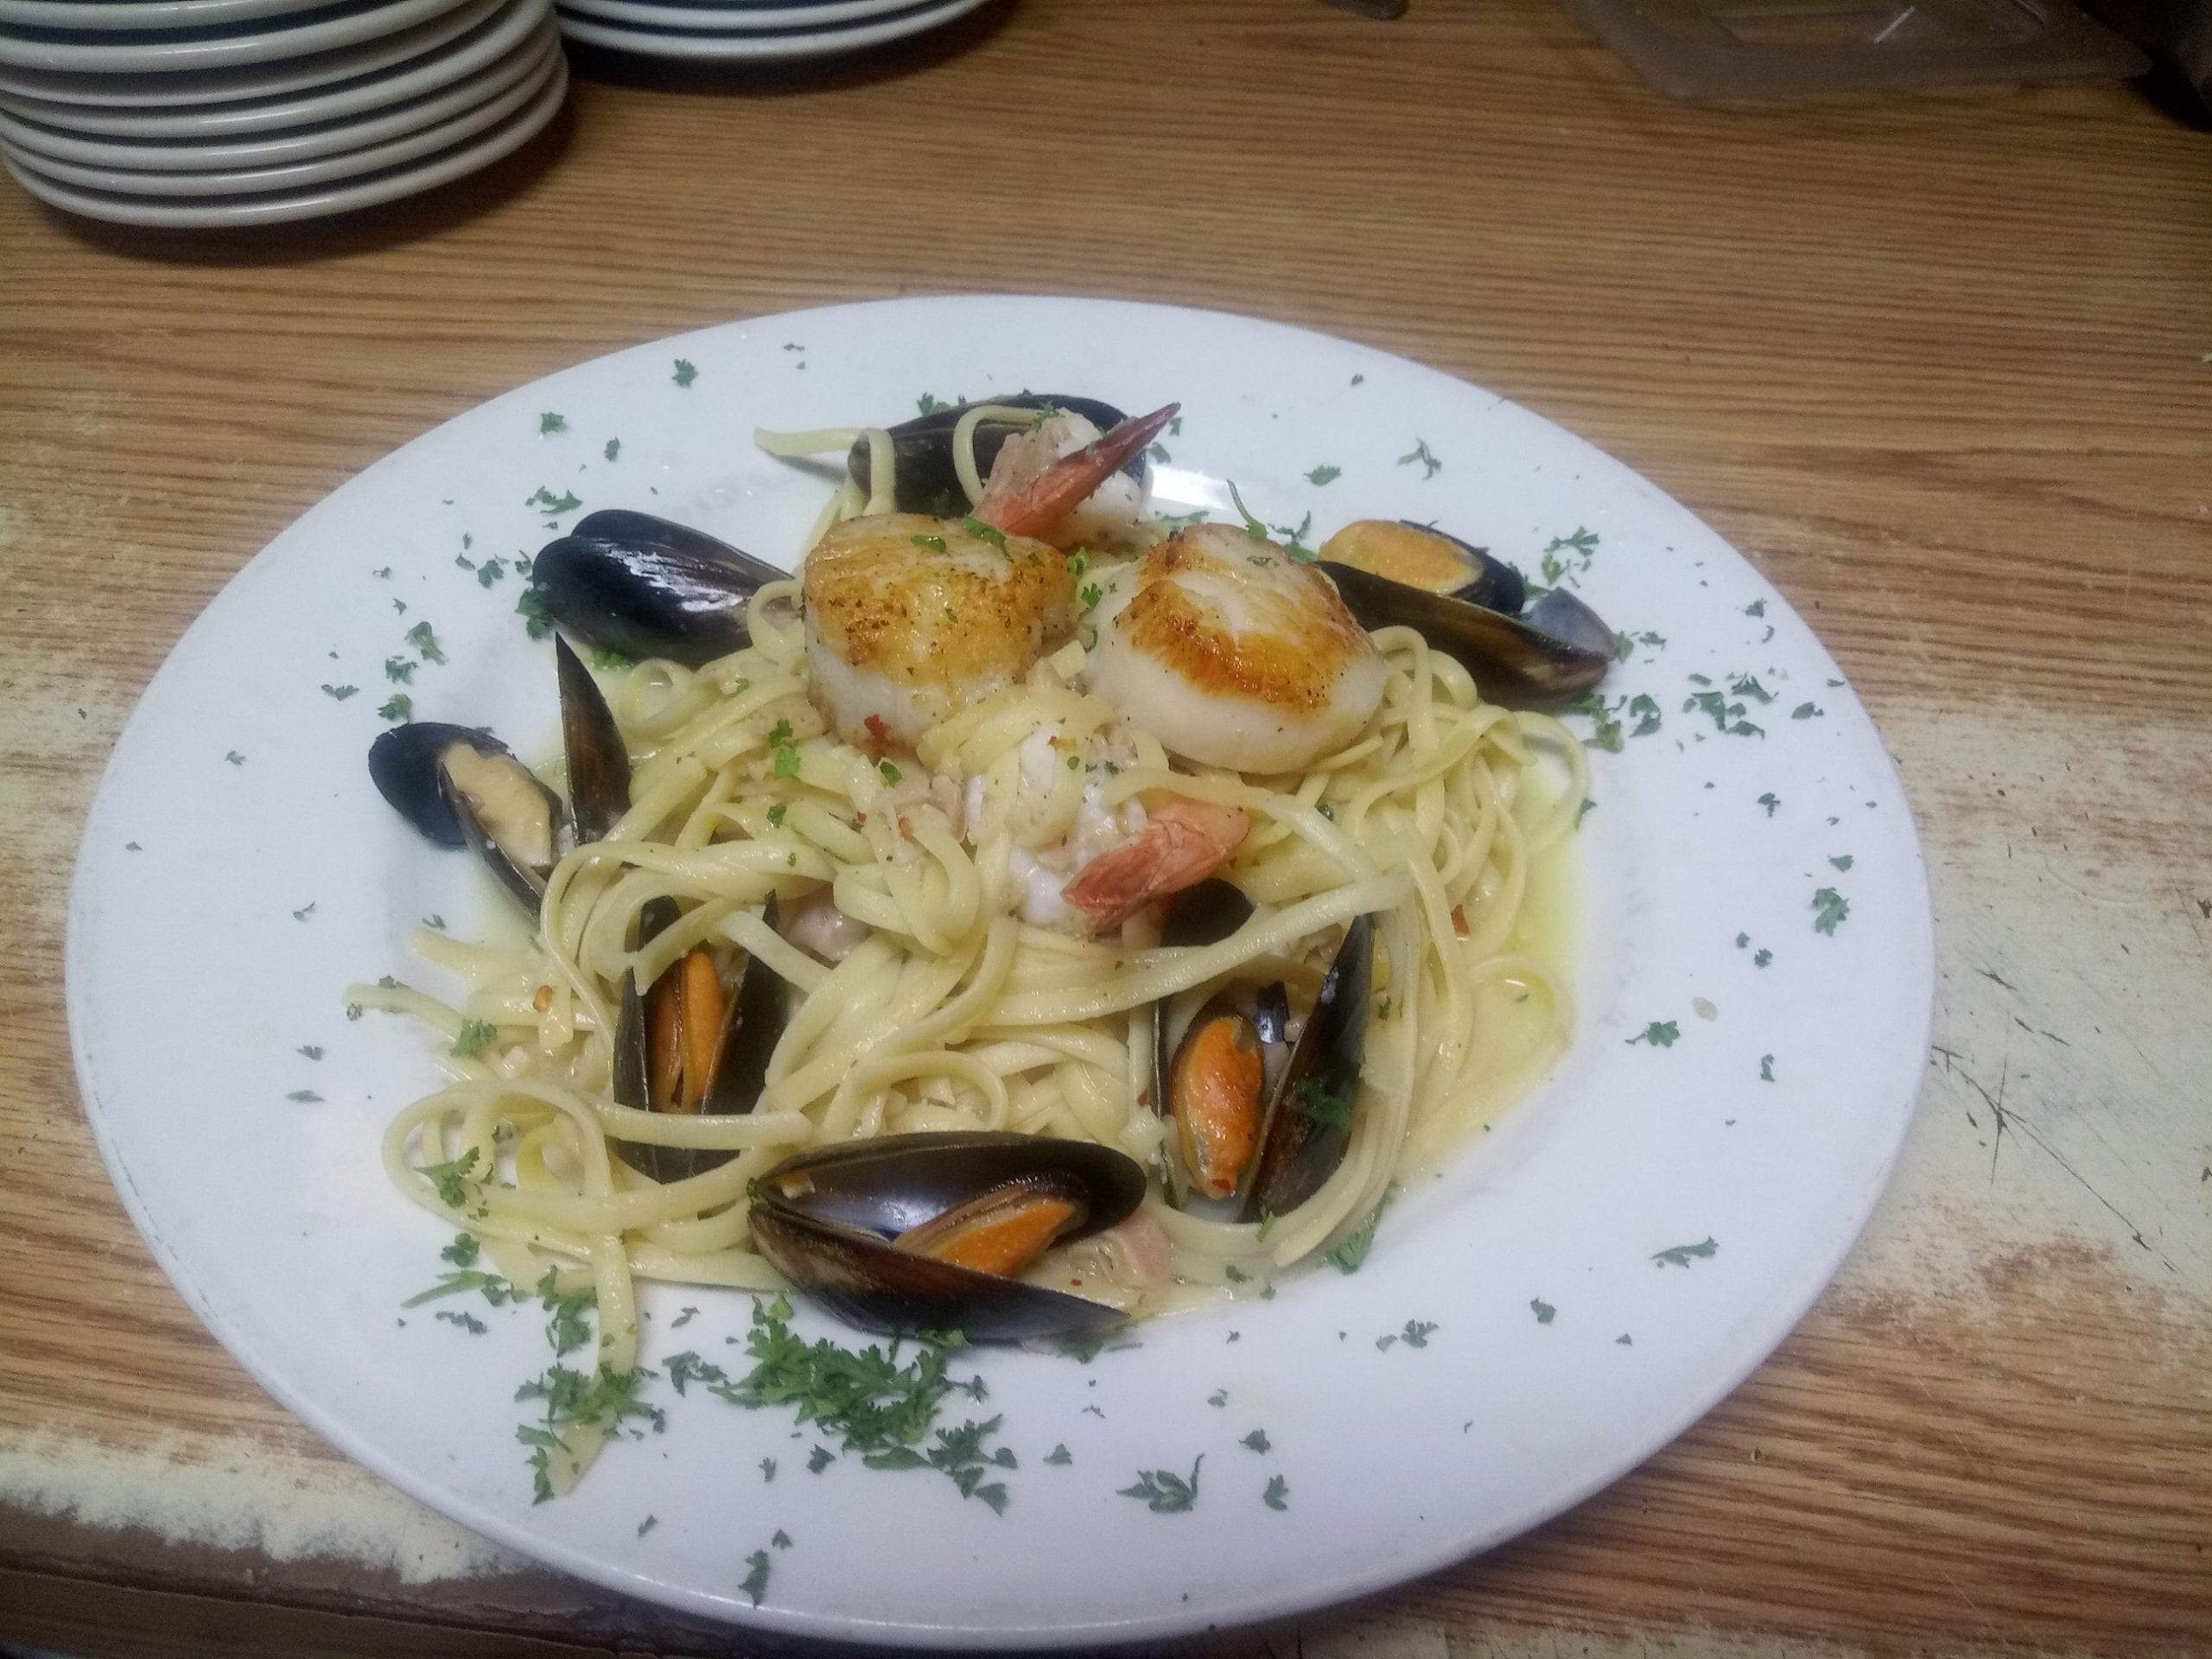 Candicci's Restaurant Weekend Specials & Live Music for November 15, 16 & 17